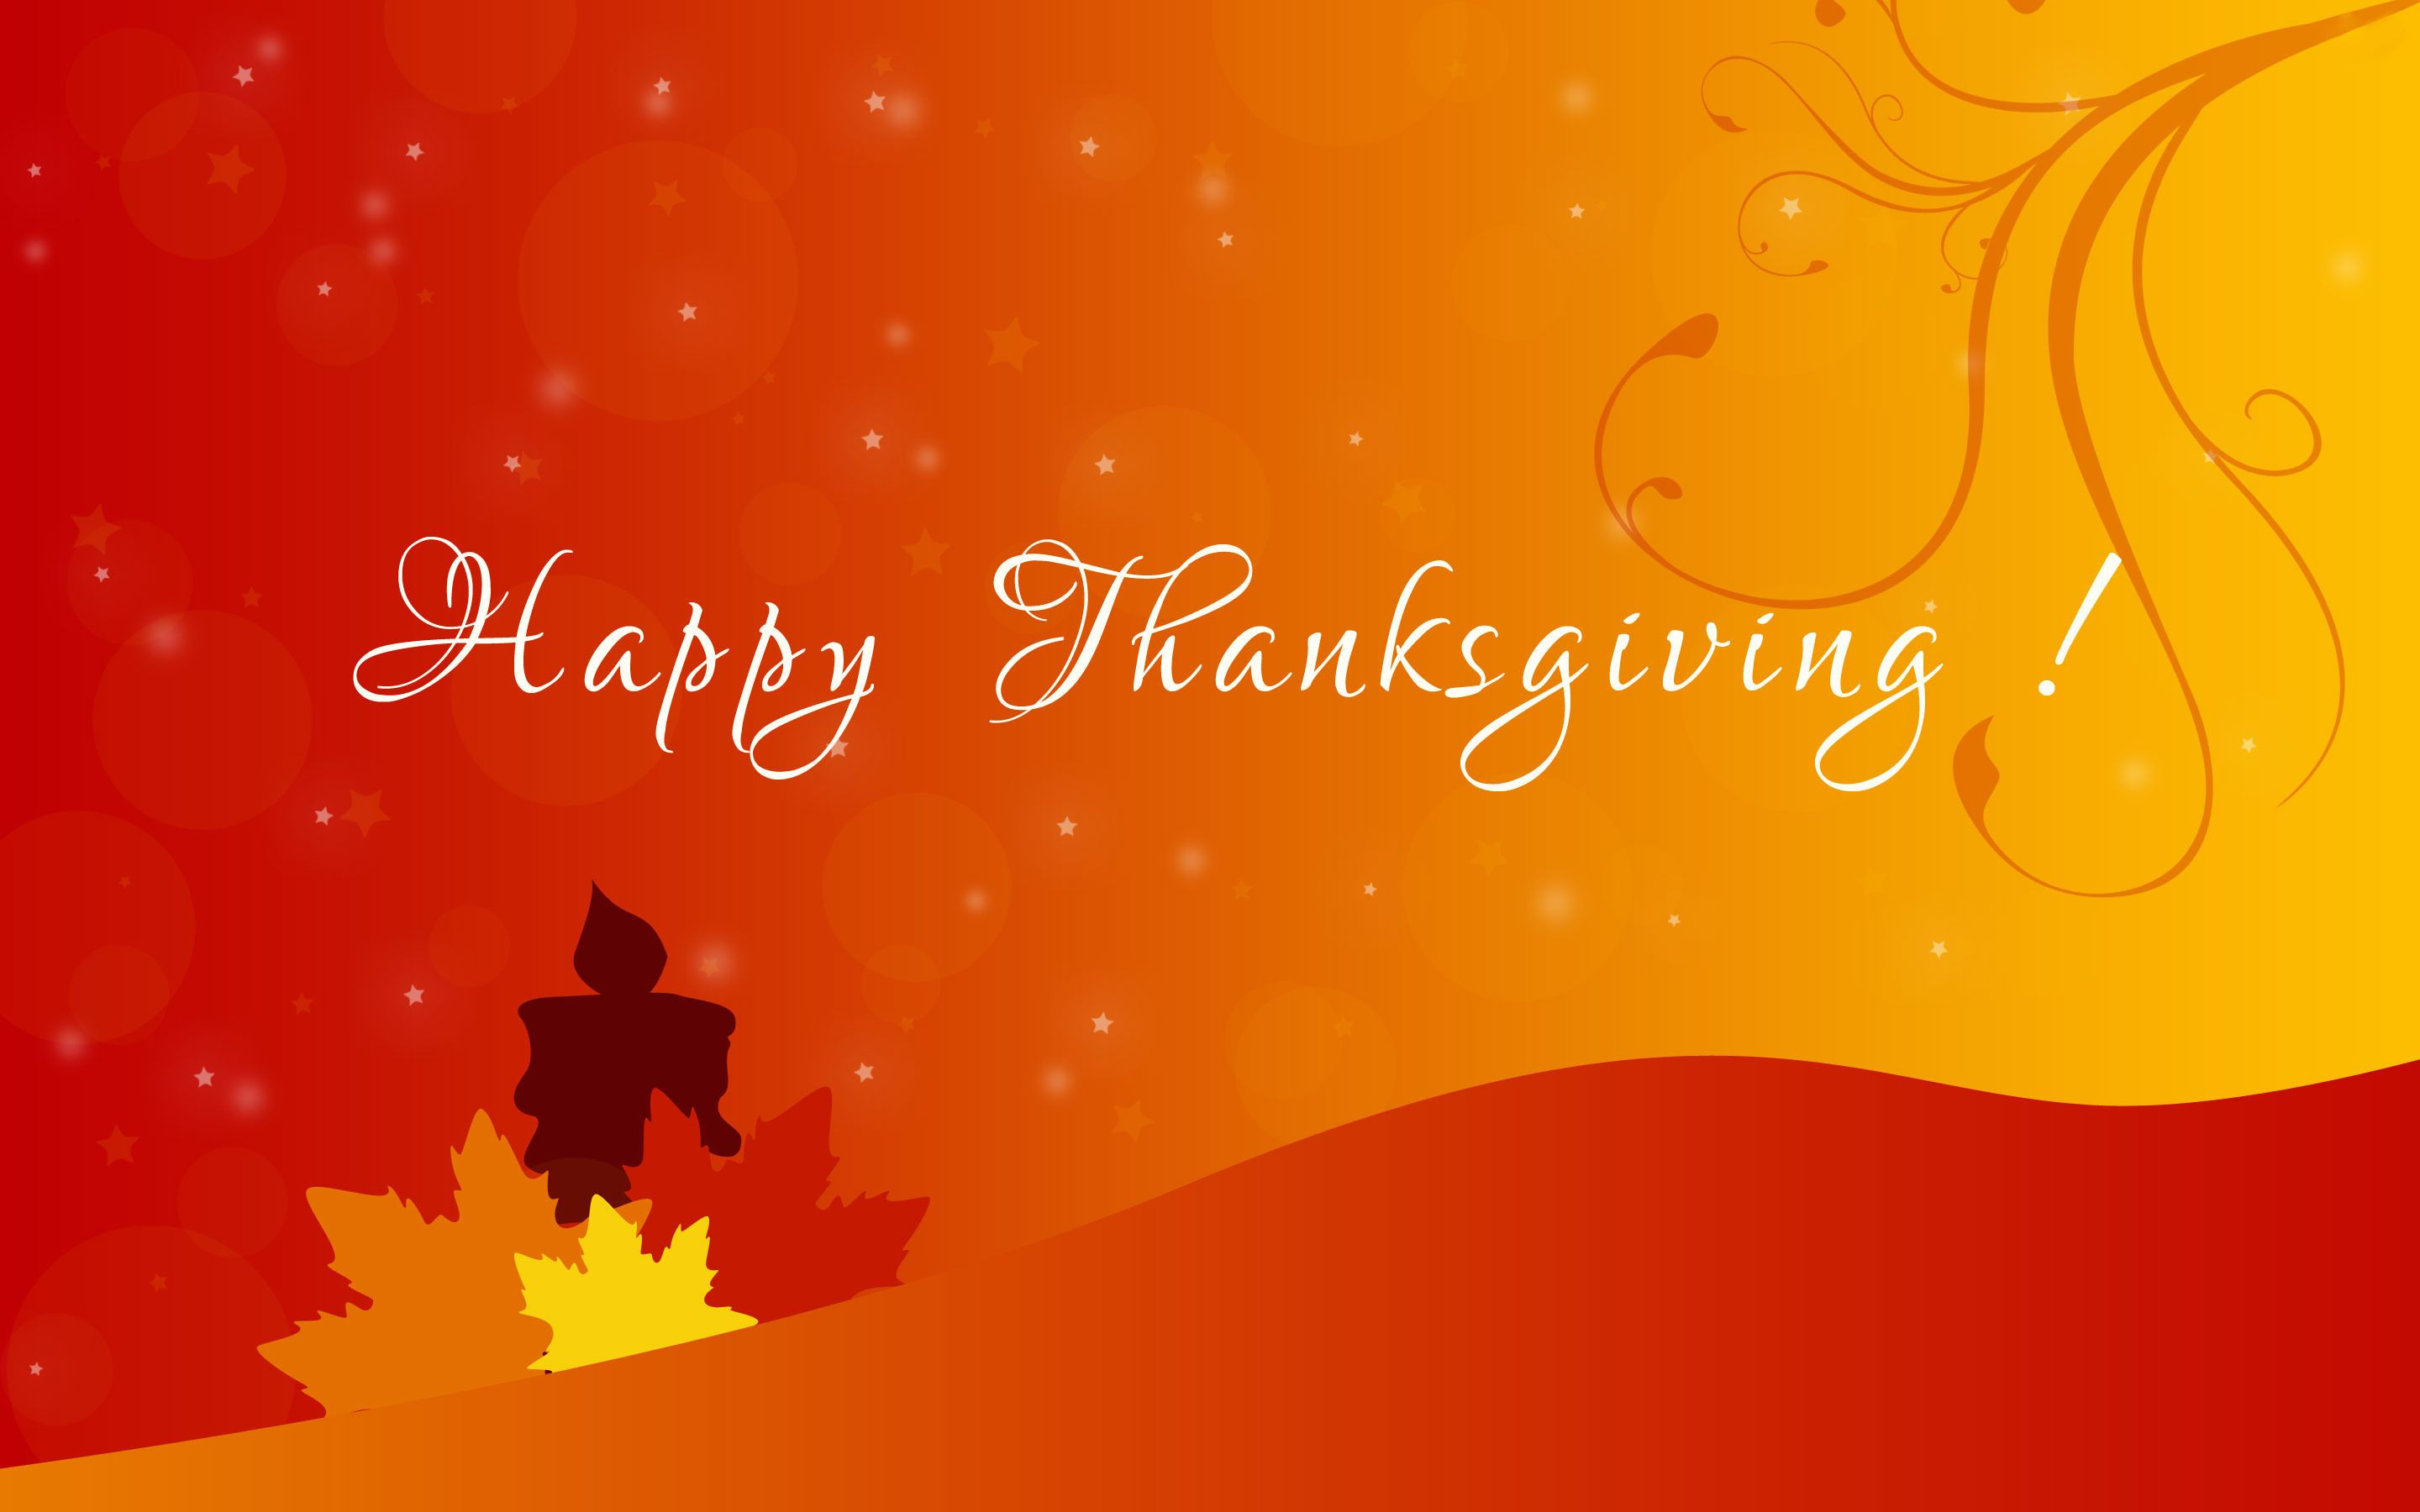 Thanksgivings Day Smartphone Wallpapers